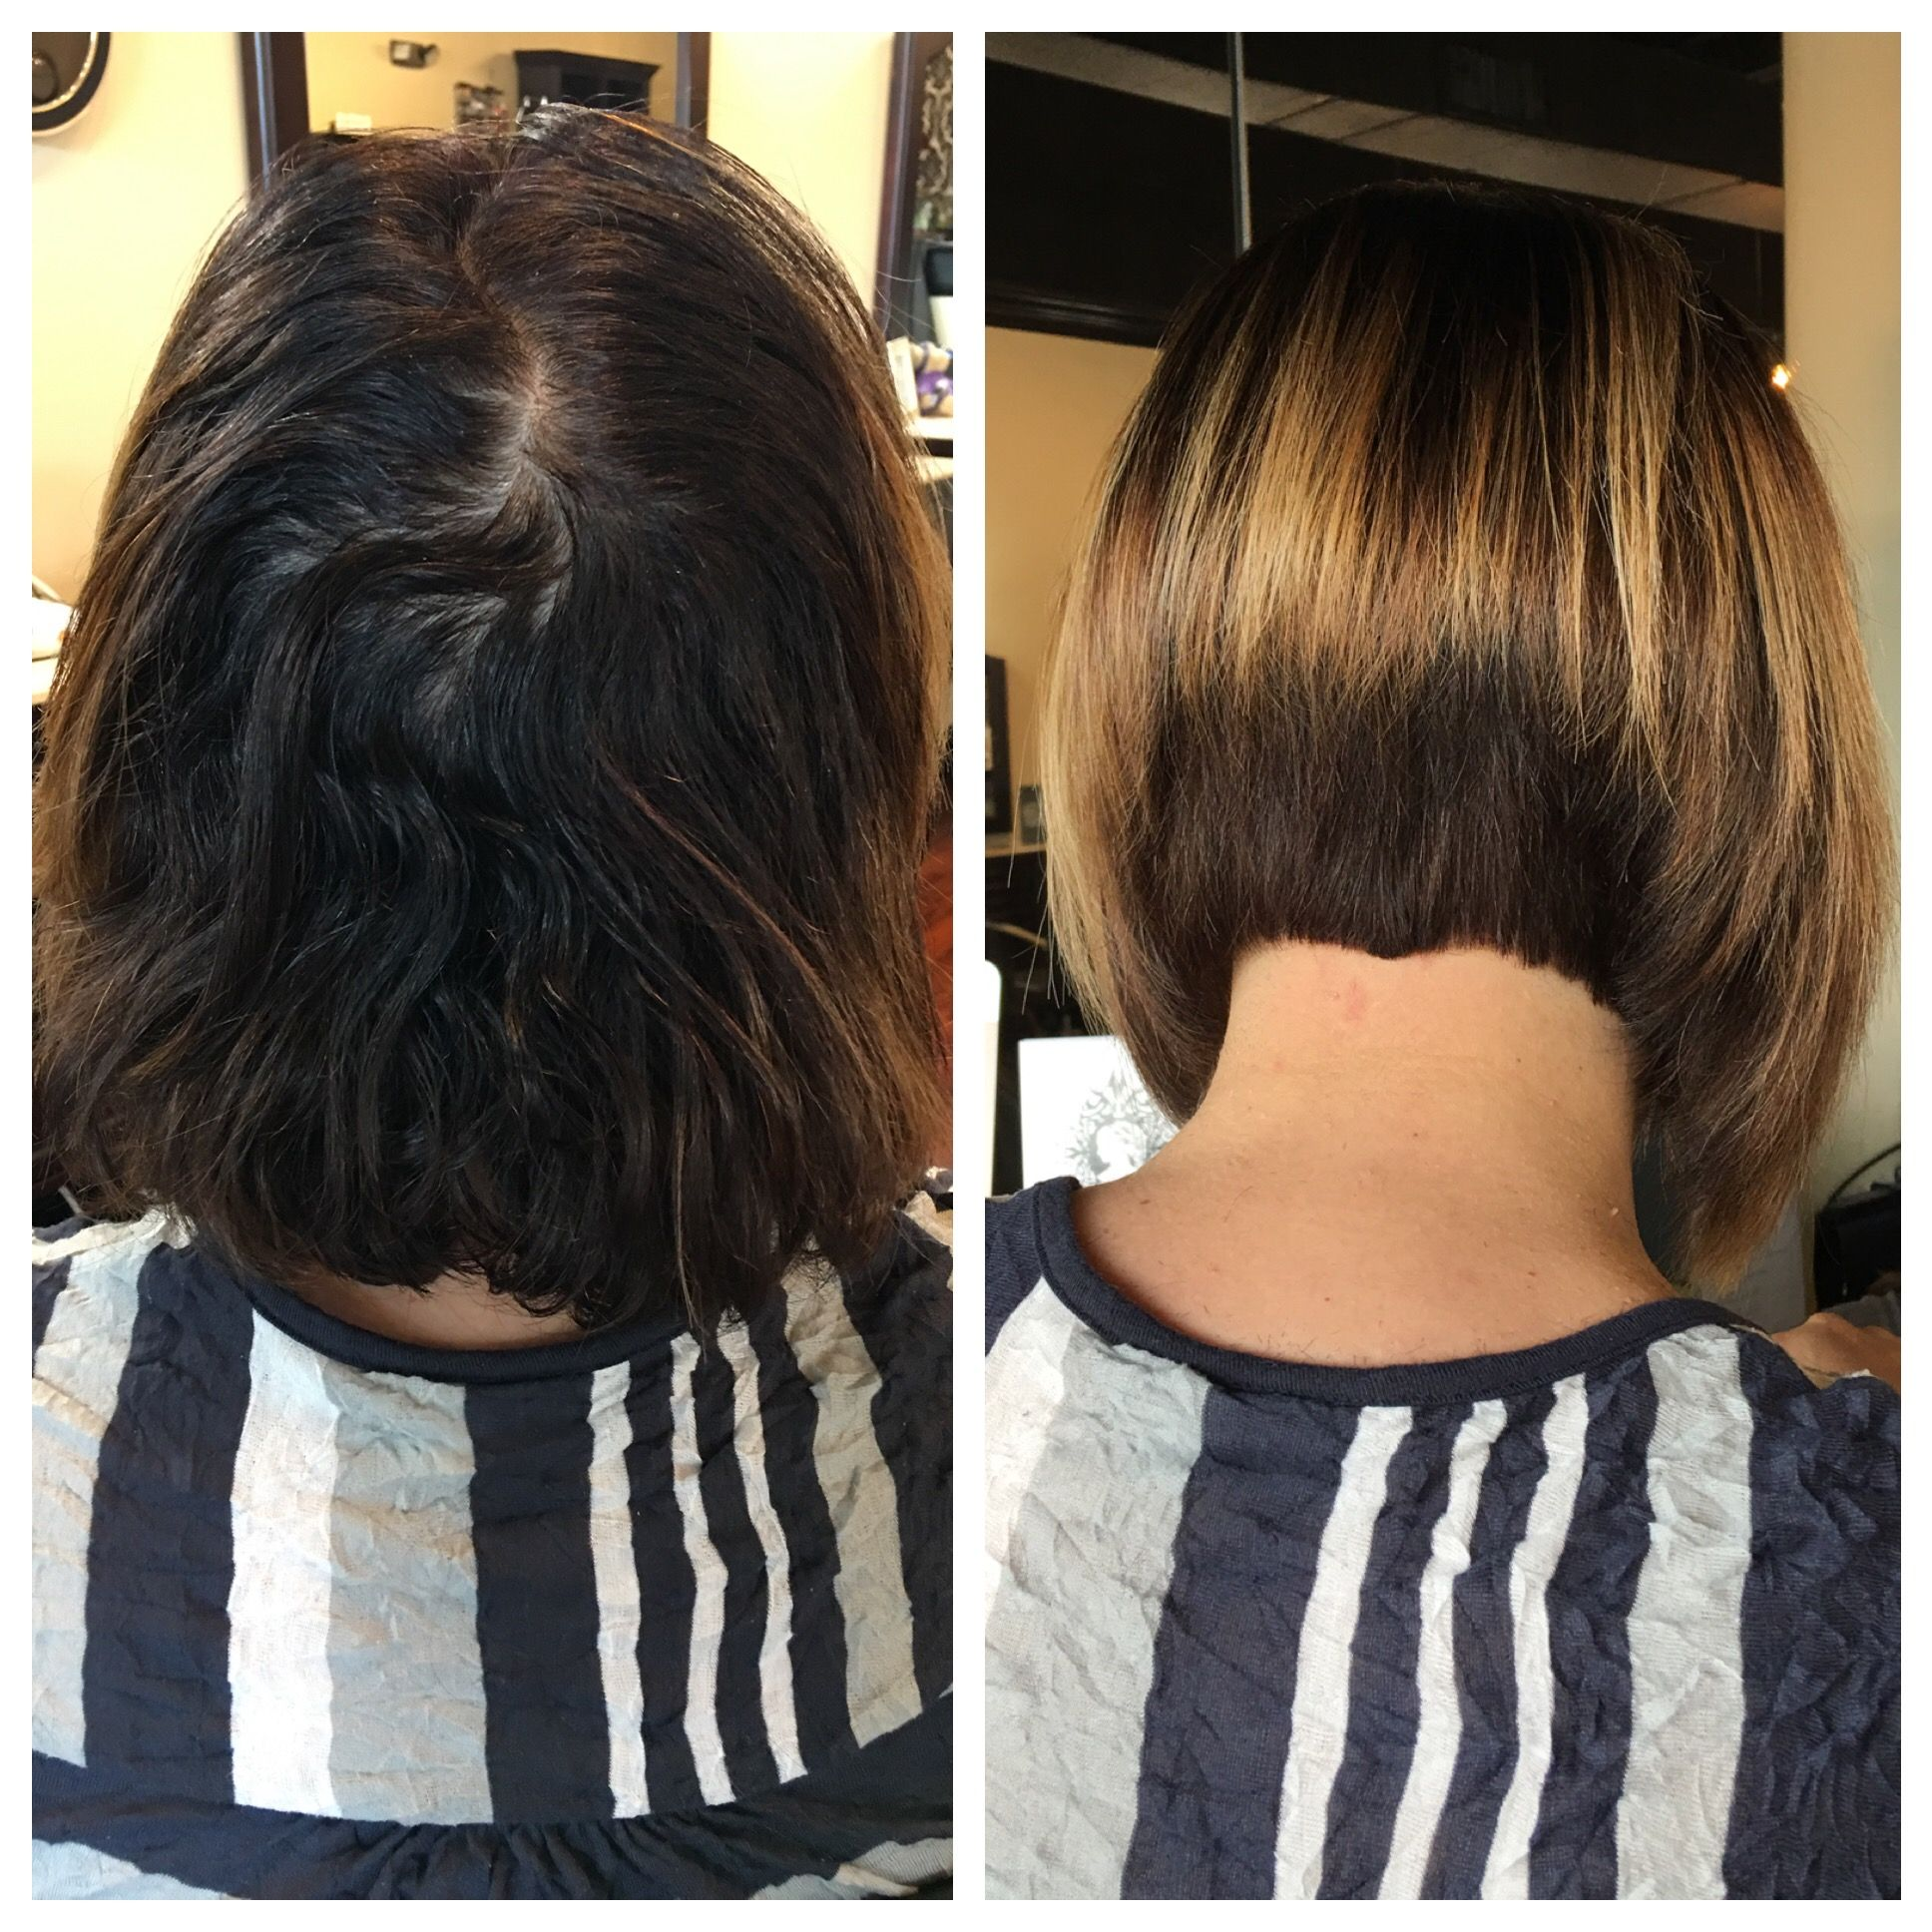 A Frame Bob With Brazilian Blowout Hair Design And Cut By Heidi